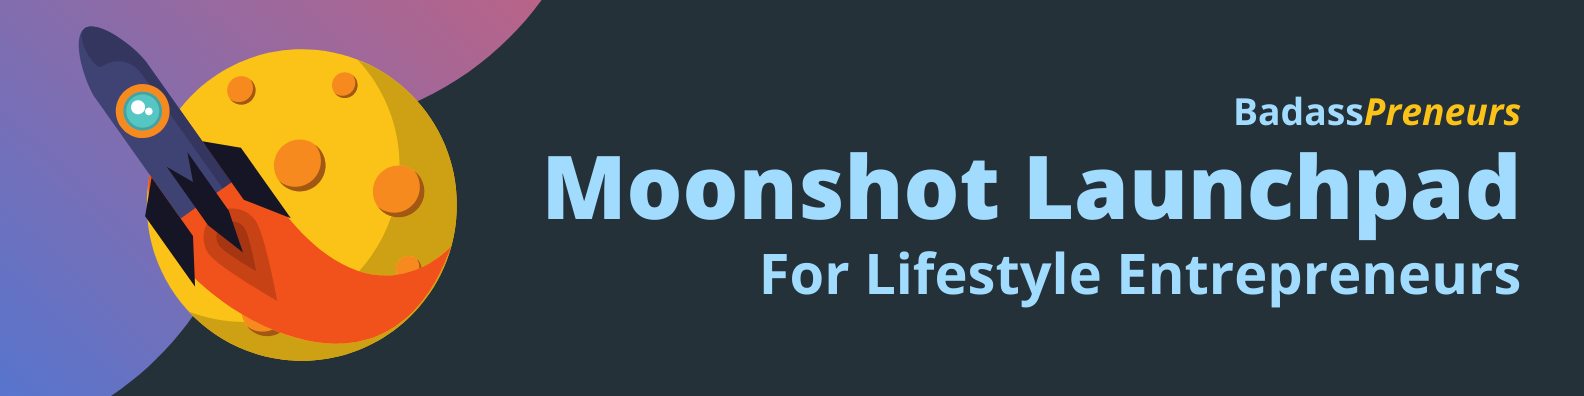 moonshot launchpad for lifestyle entrepreneurs